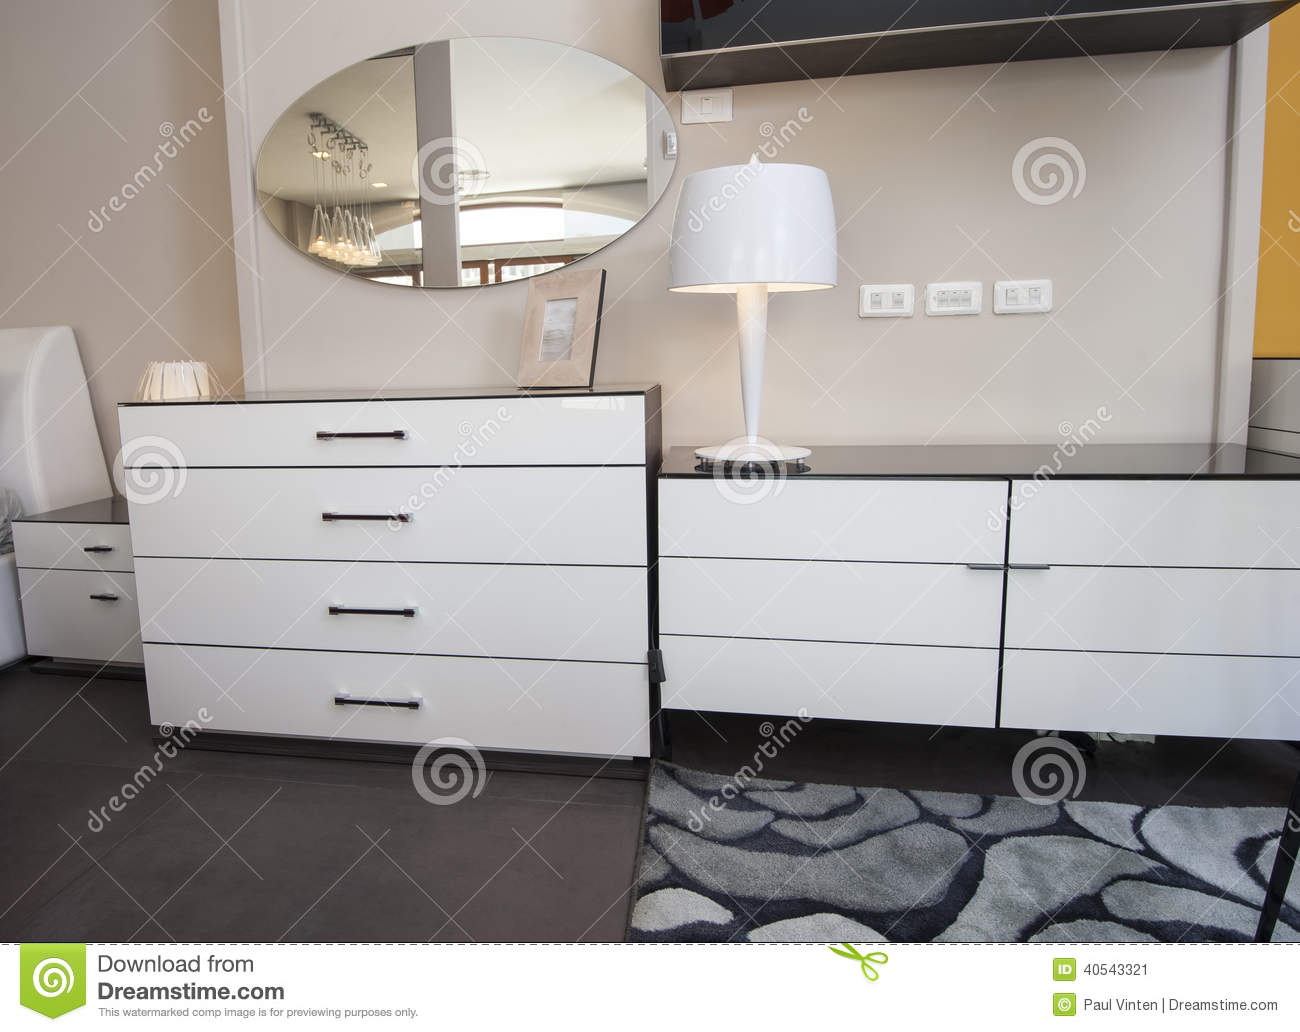 Dresser Unit In Bedroom Of Show Home Stock Image Image Of Lamp Wall 40543321